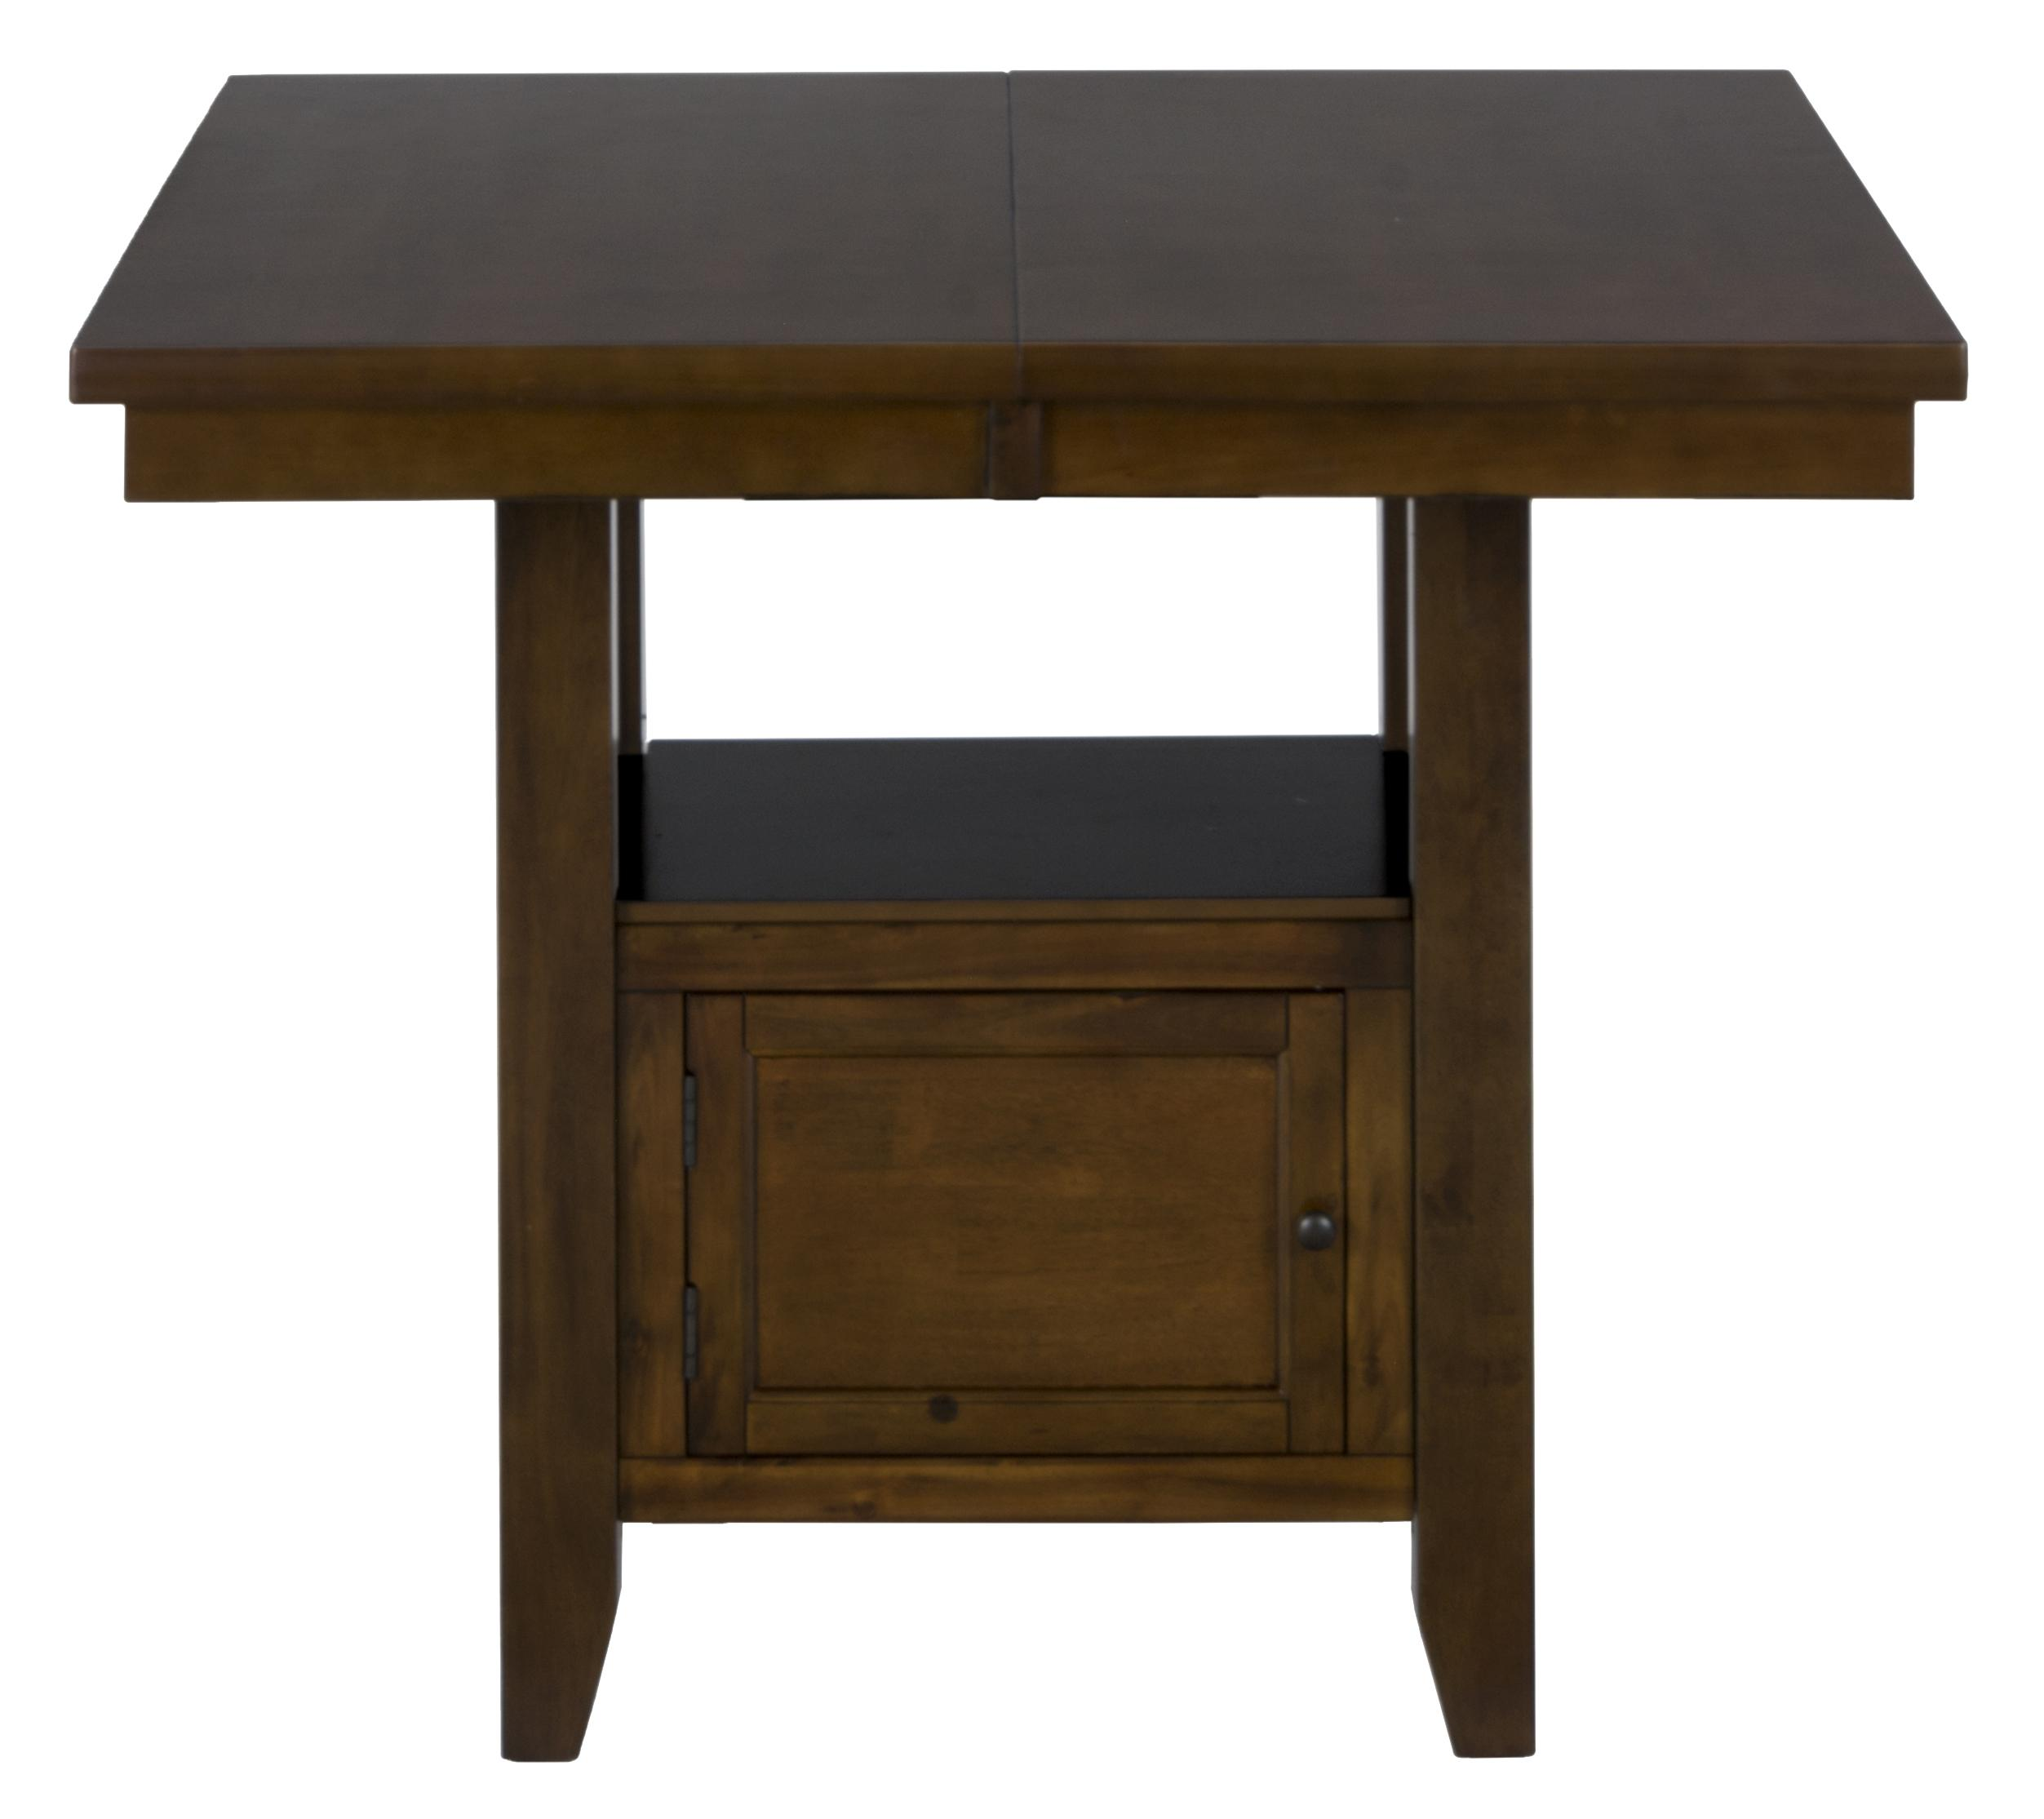 Jofran Taylor Brown Cherry Double Header Counter Height Table - Item Number: 337-54B+T